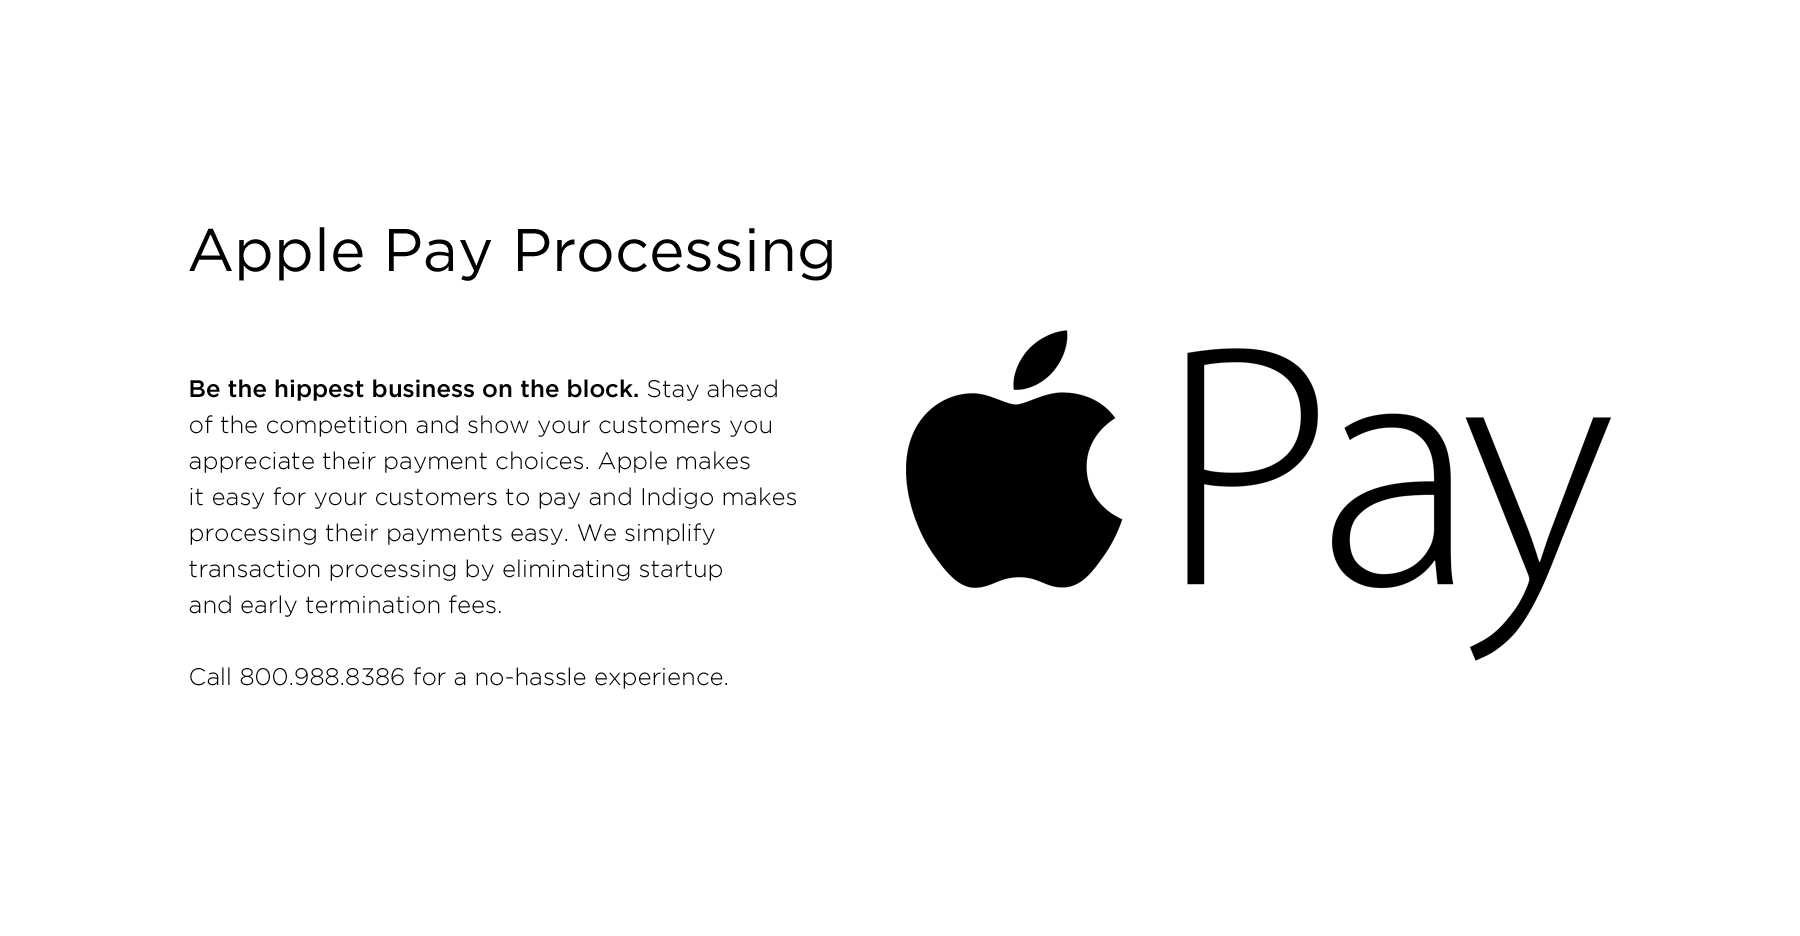 Apple Pay Processing